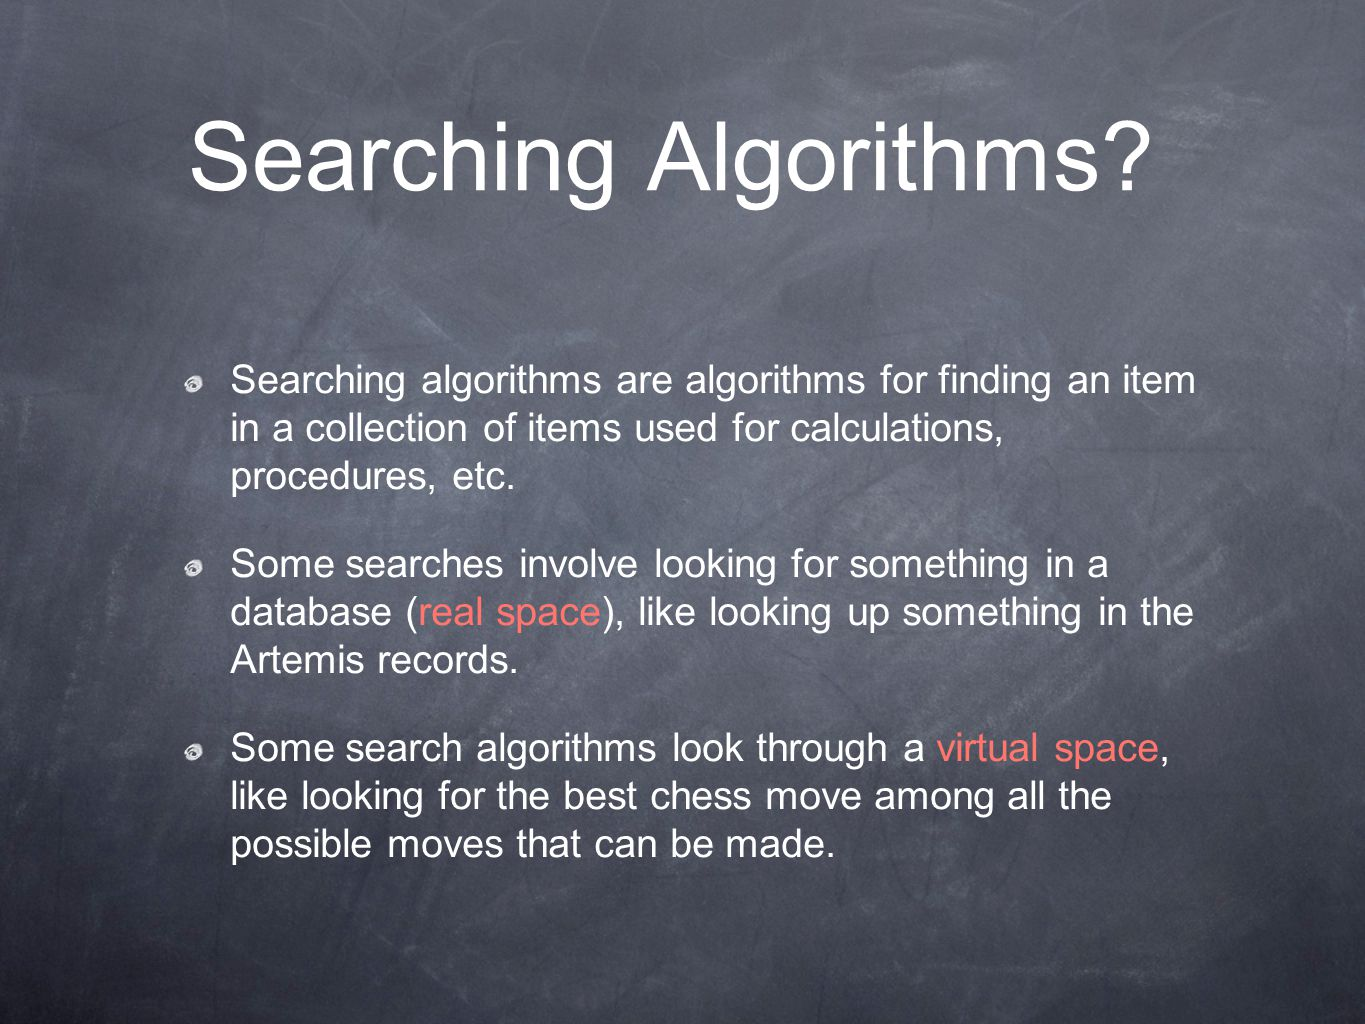 Searching algorithms are algorithms for finding an item in a collection of items used for calculations, procedures, etc. Some searches involve looking